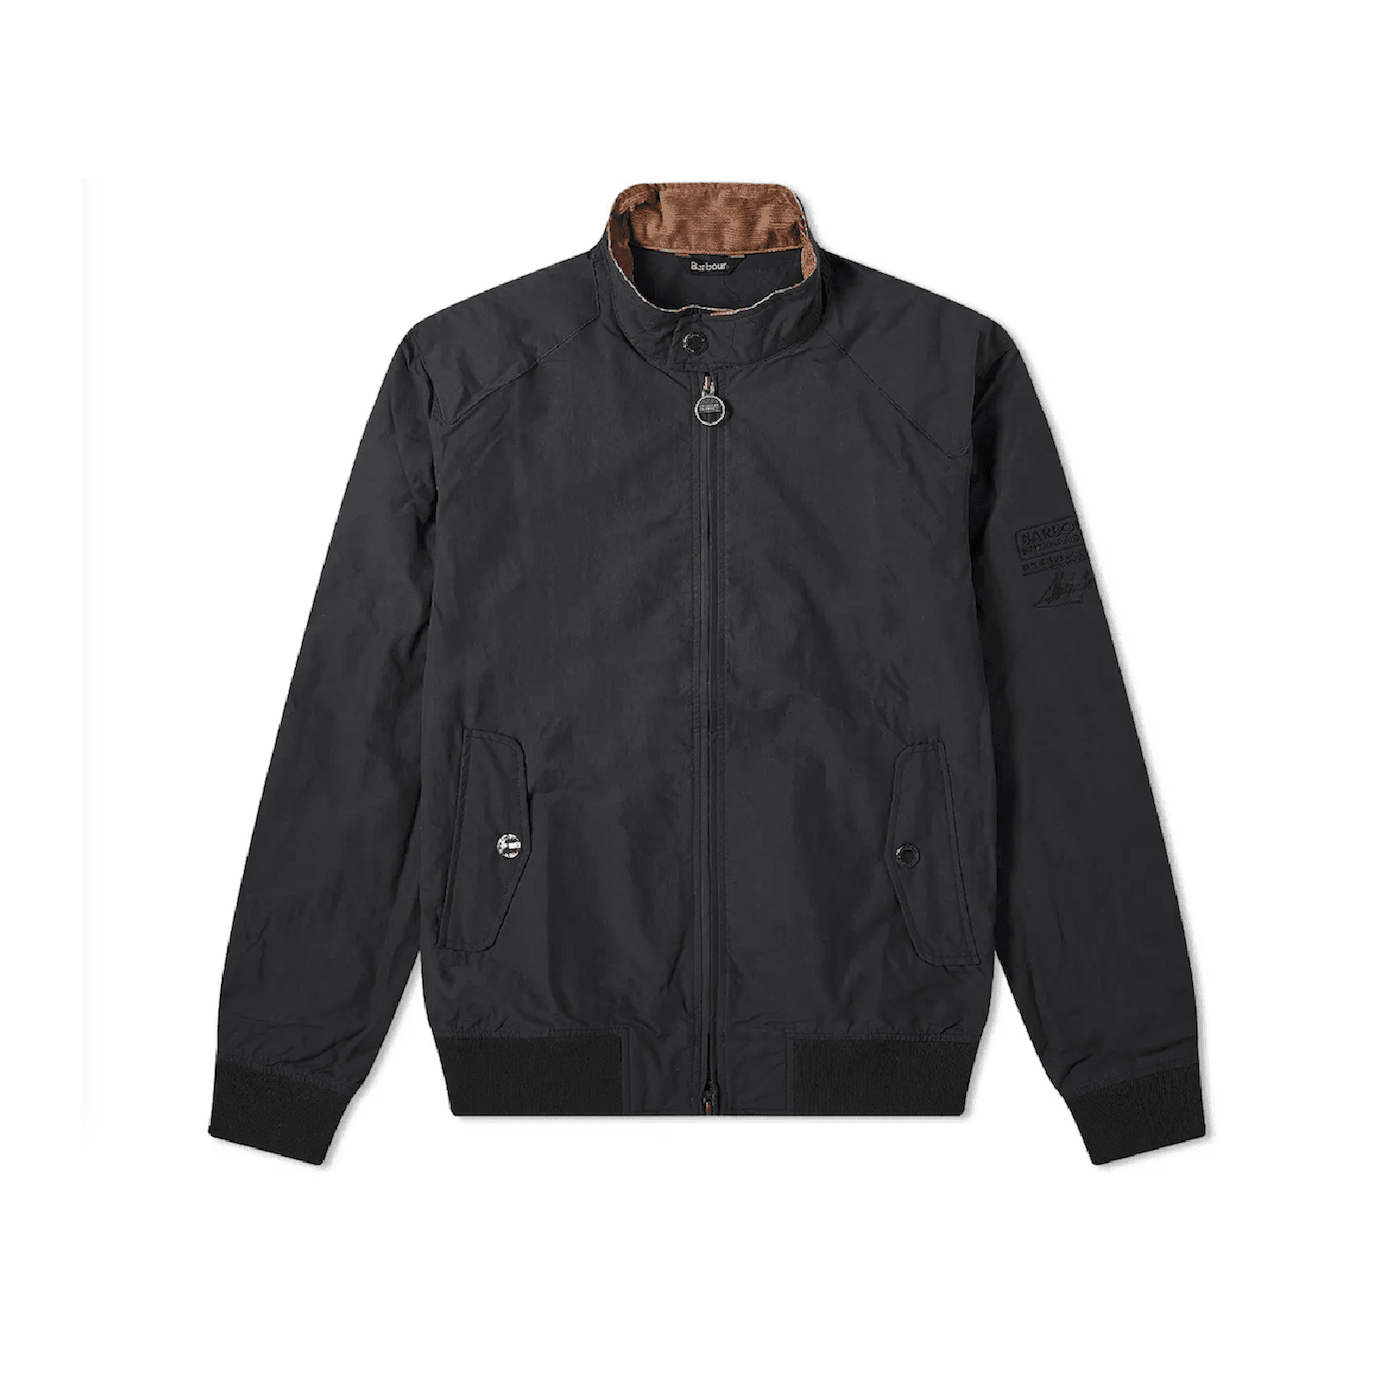 Blouson Barbour harrington rectifier navy